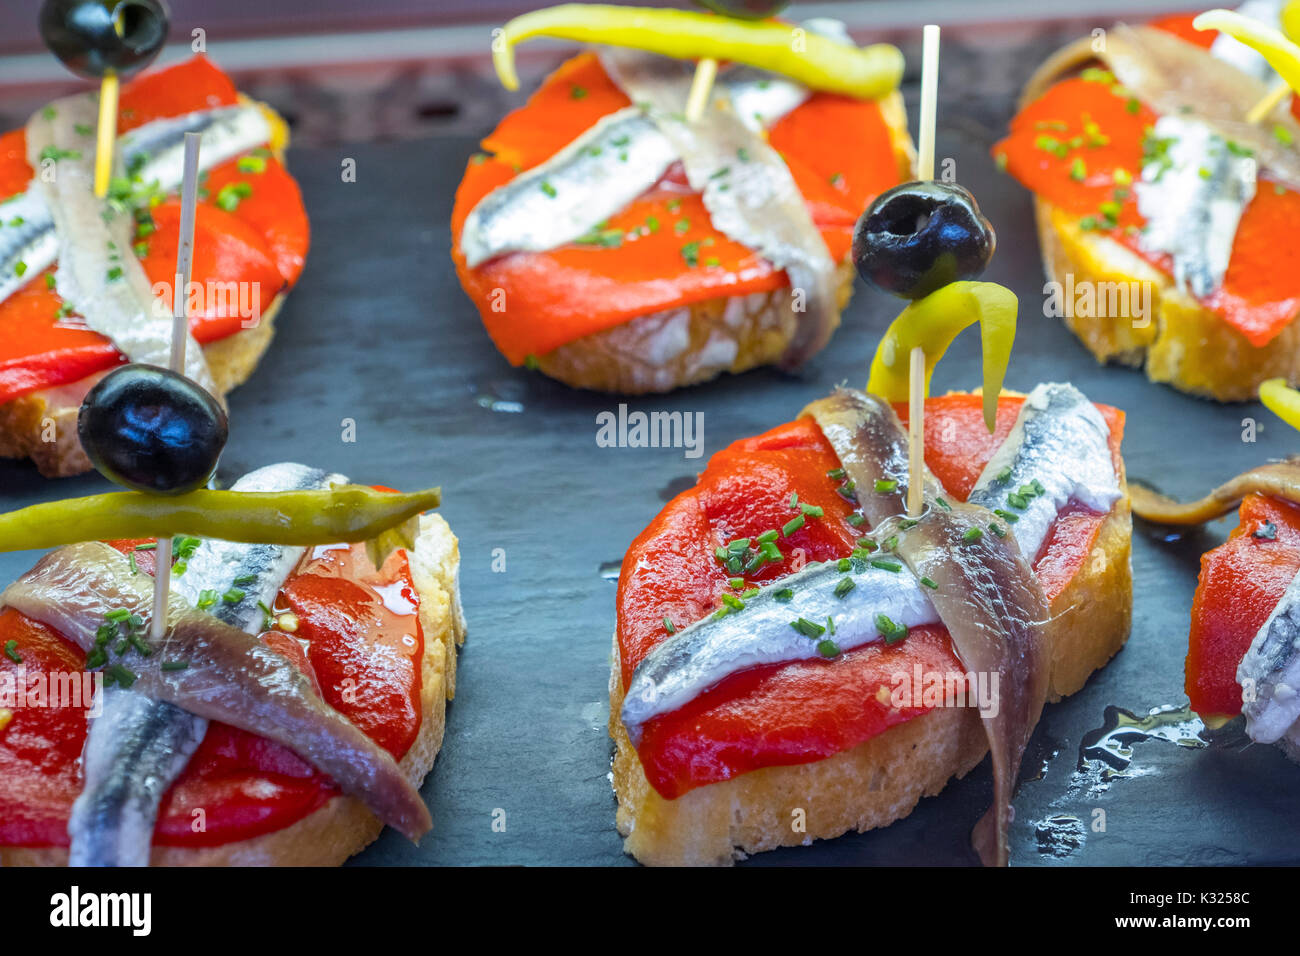 Pintxos at tapas bar. Santander, Cantabrian Sea, Cantabria, Spain, Europe - Stock Image